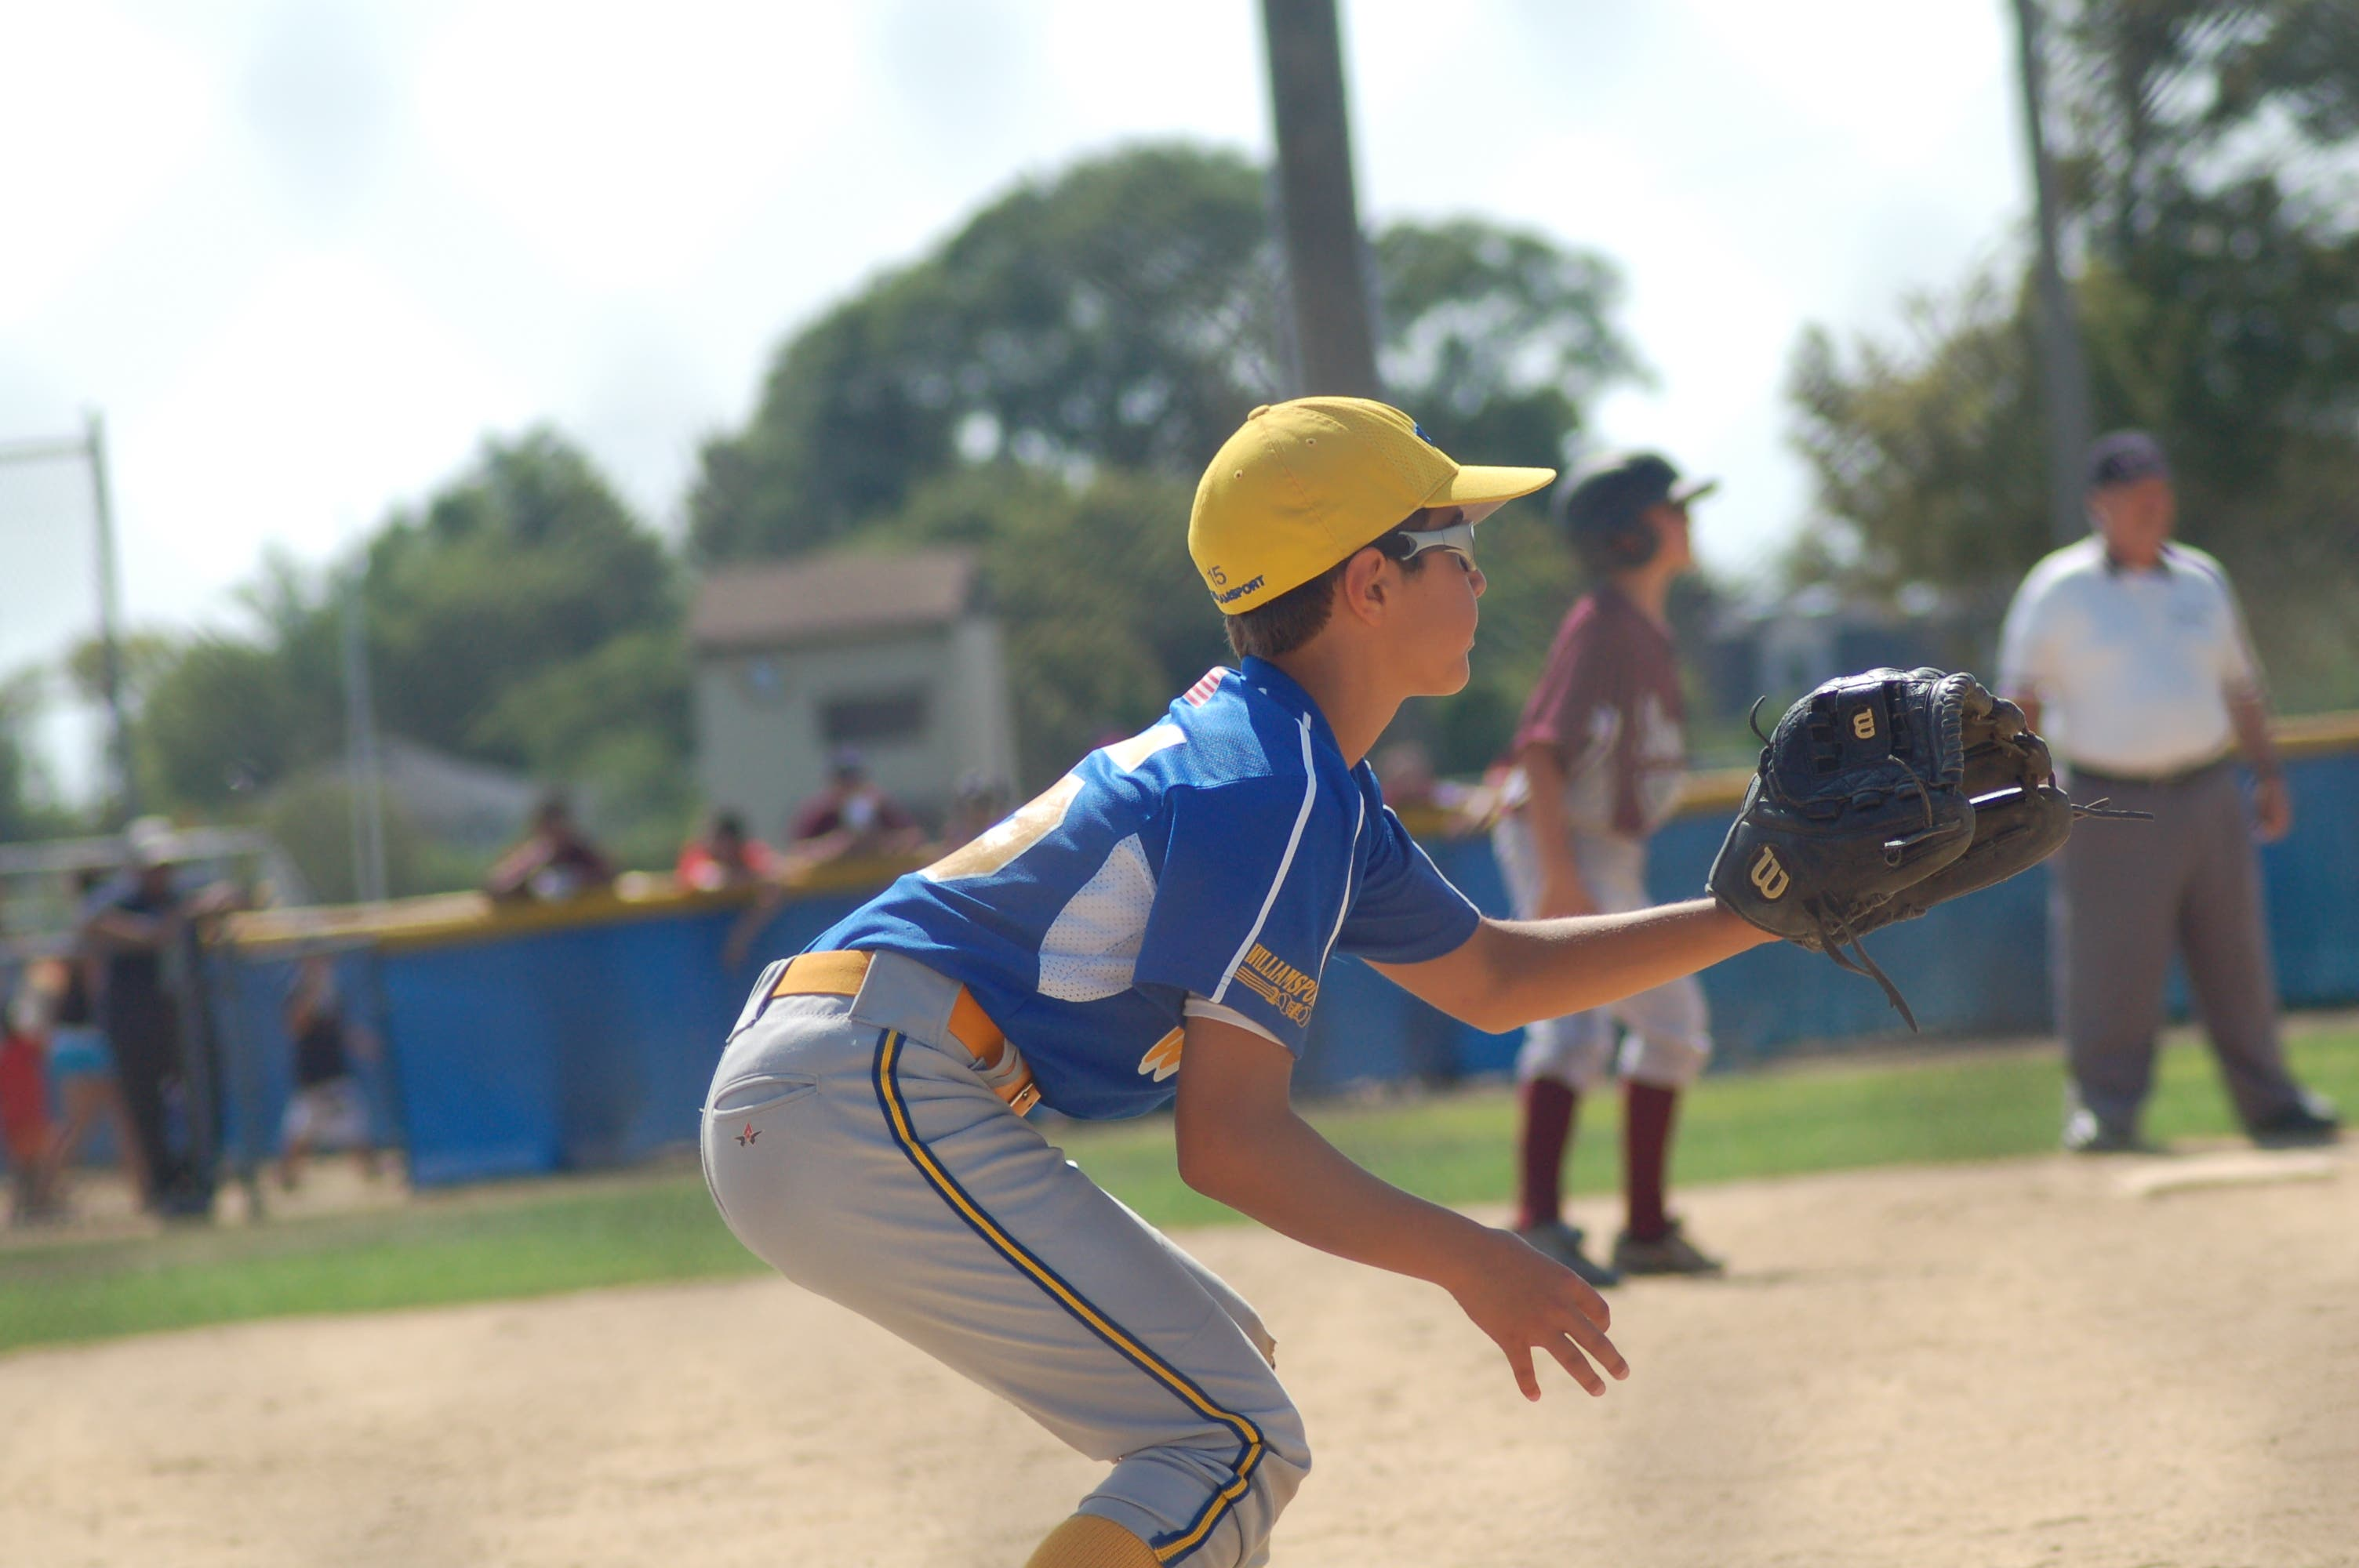 West Islip Little League Captures Three Gold Medals In Williamsport Tournament West Islip Ny Patch